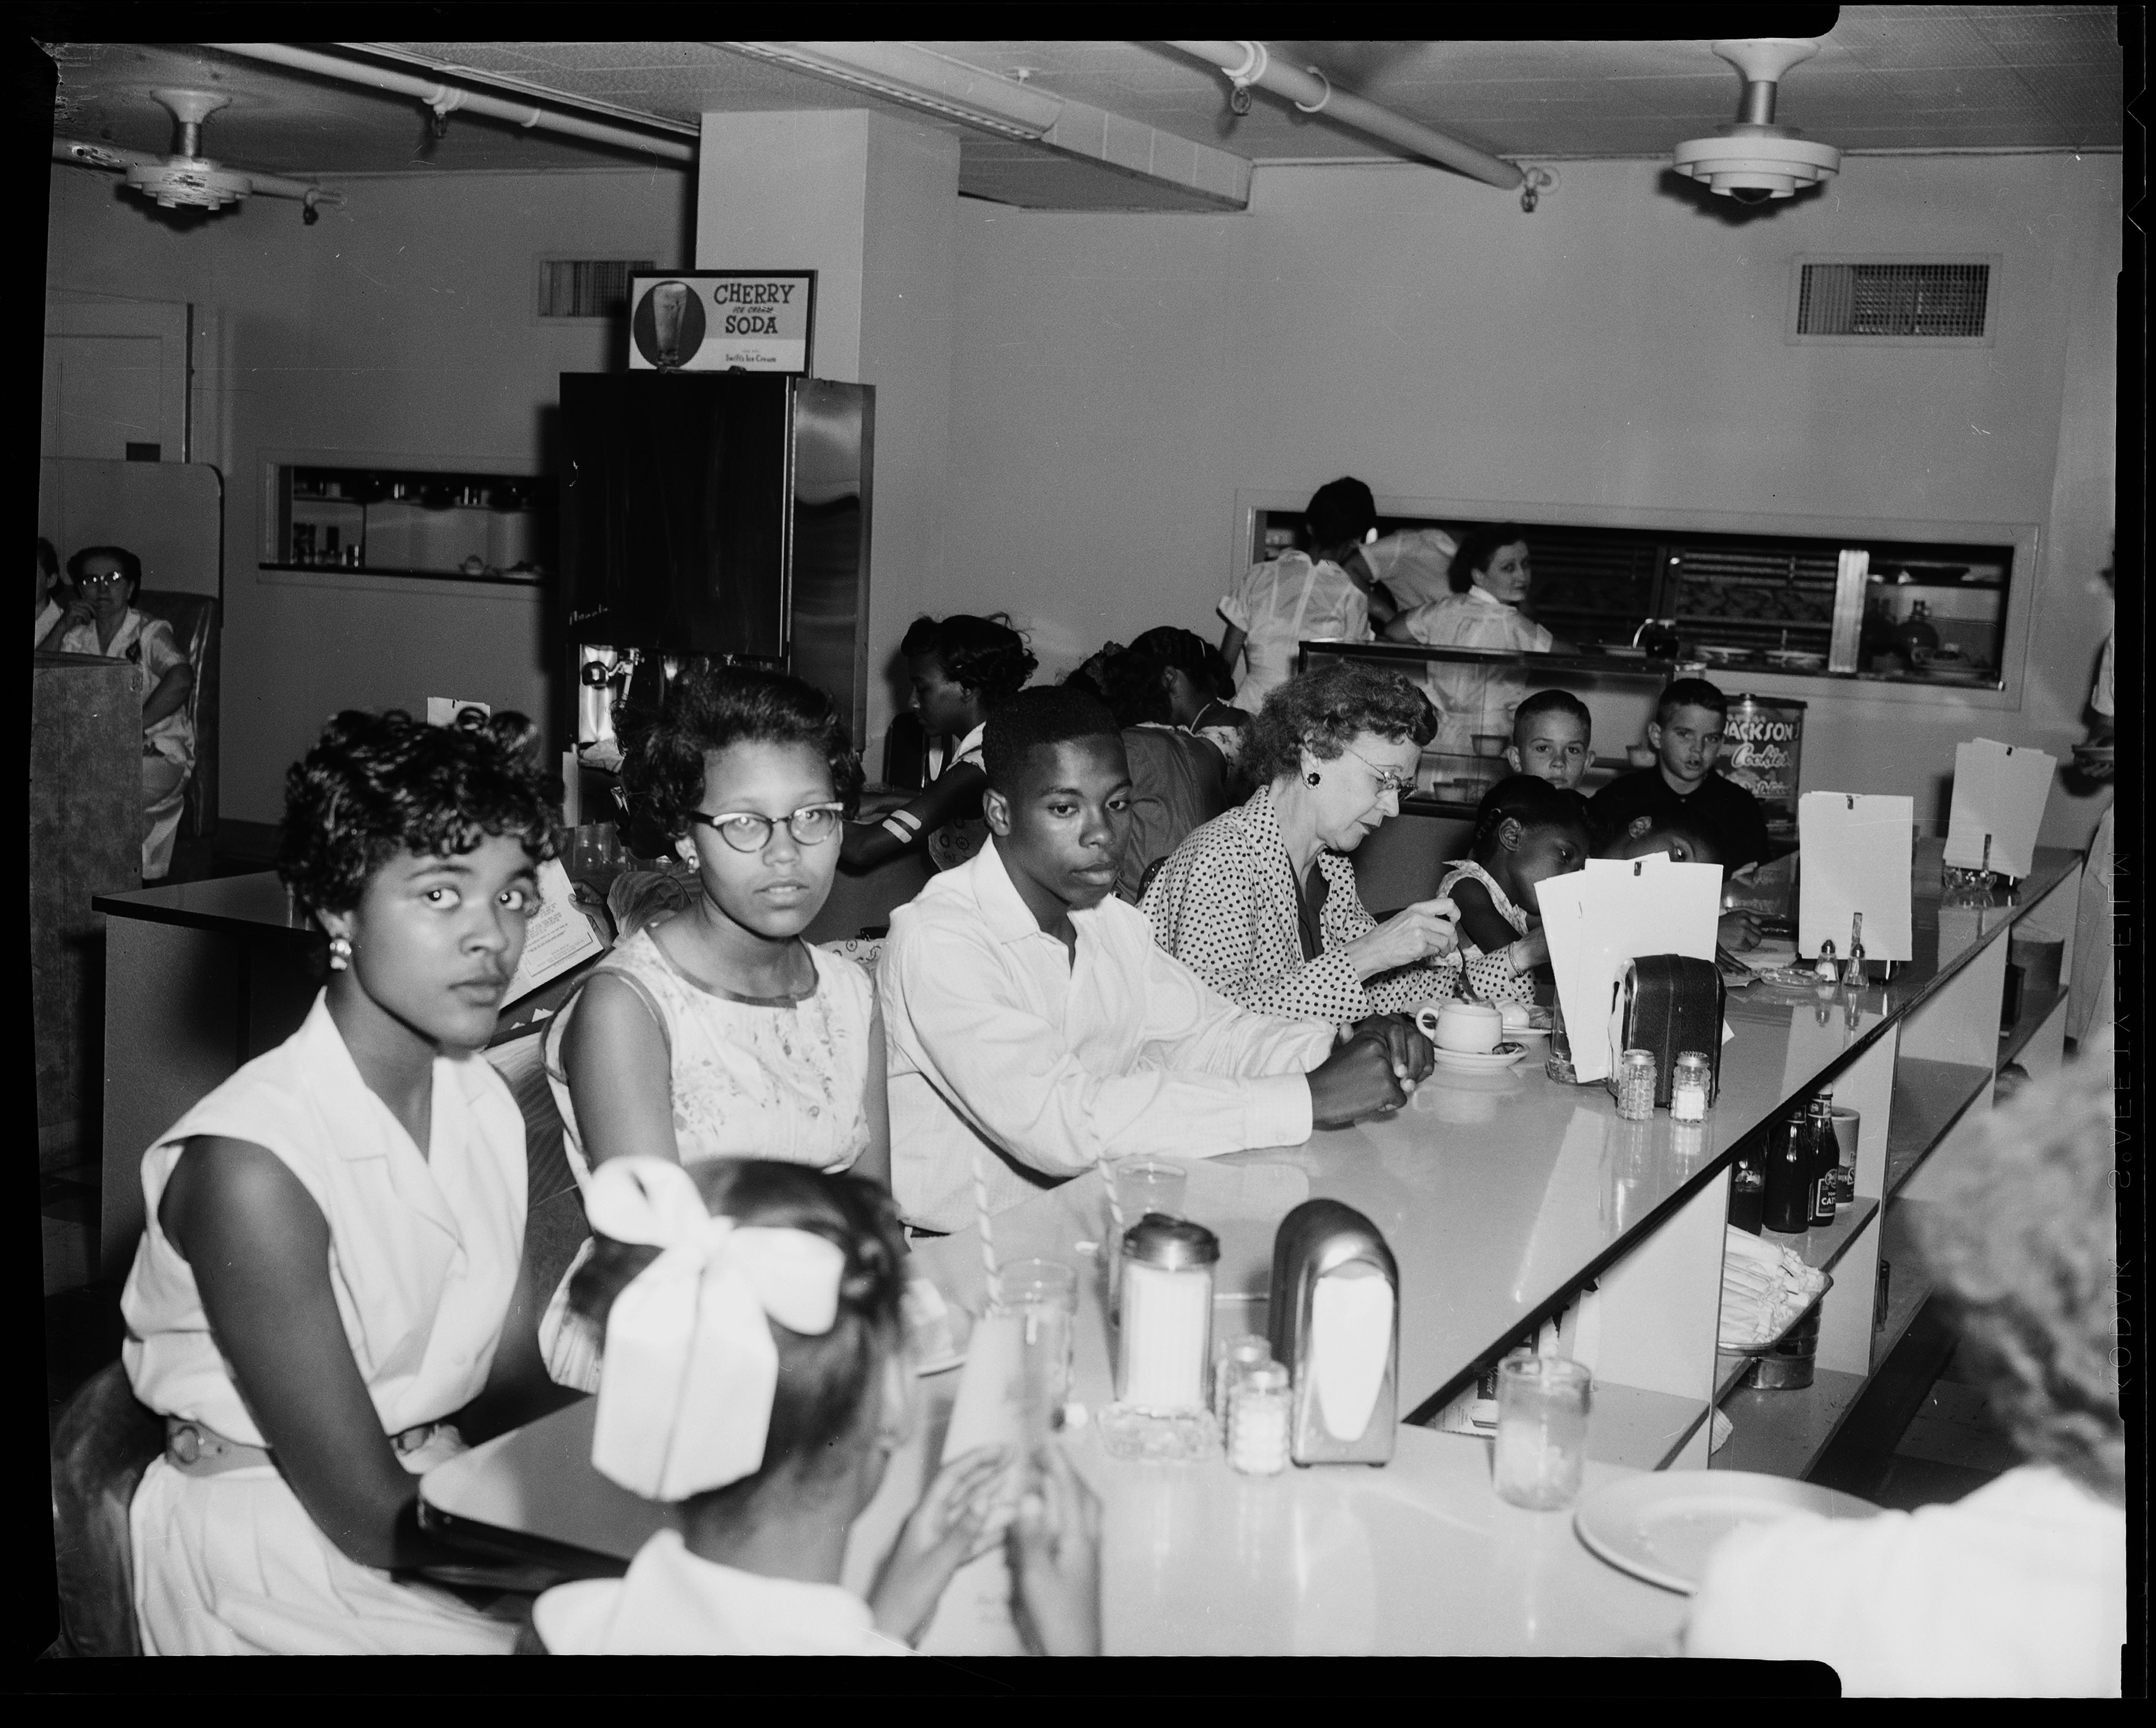 People sitting an restaurant counter during civil rights sit in.